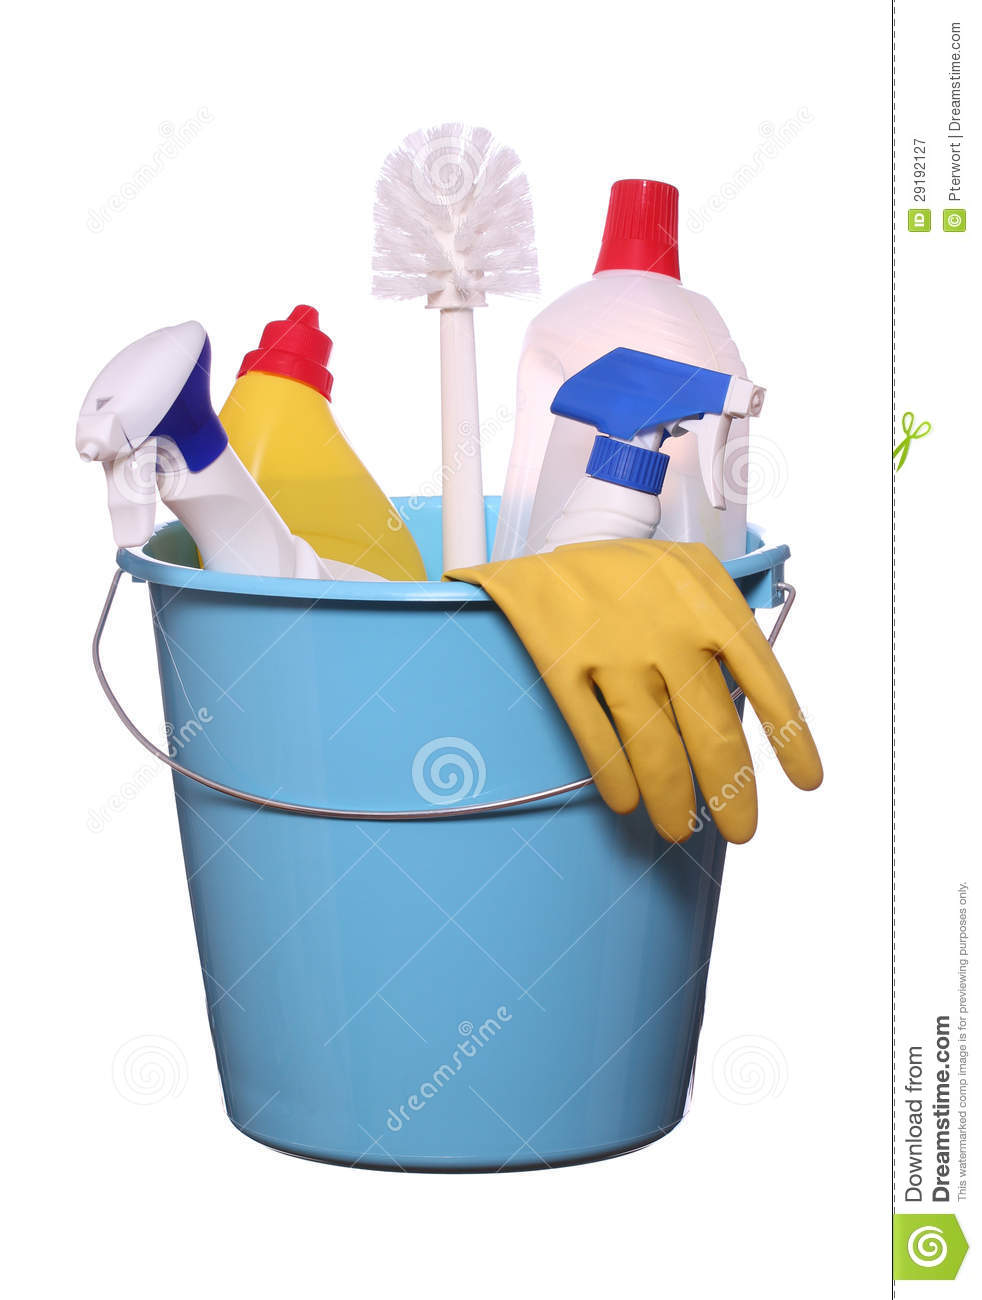 Objects for spring cleaning stock image image 29192127 What is spring cleaning